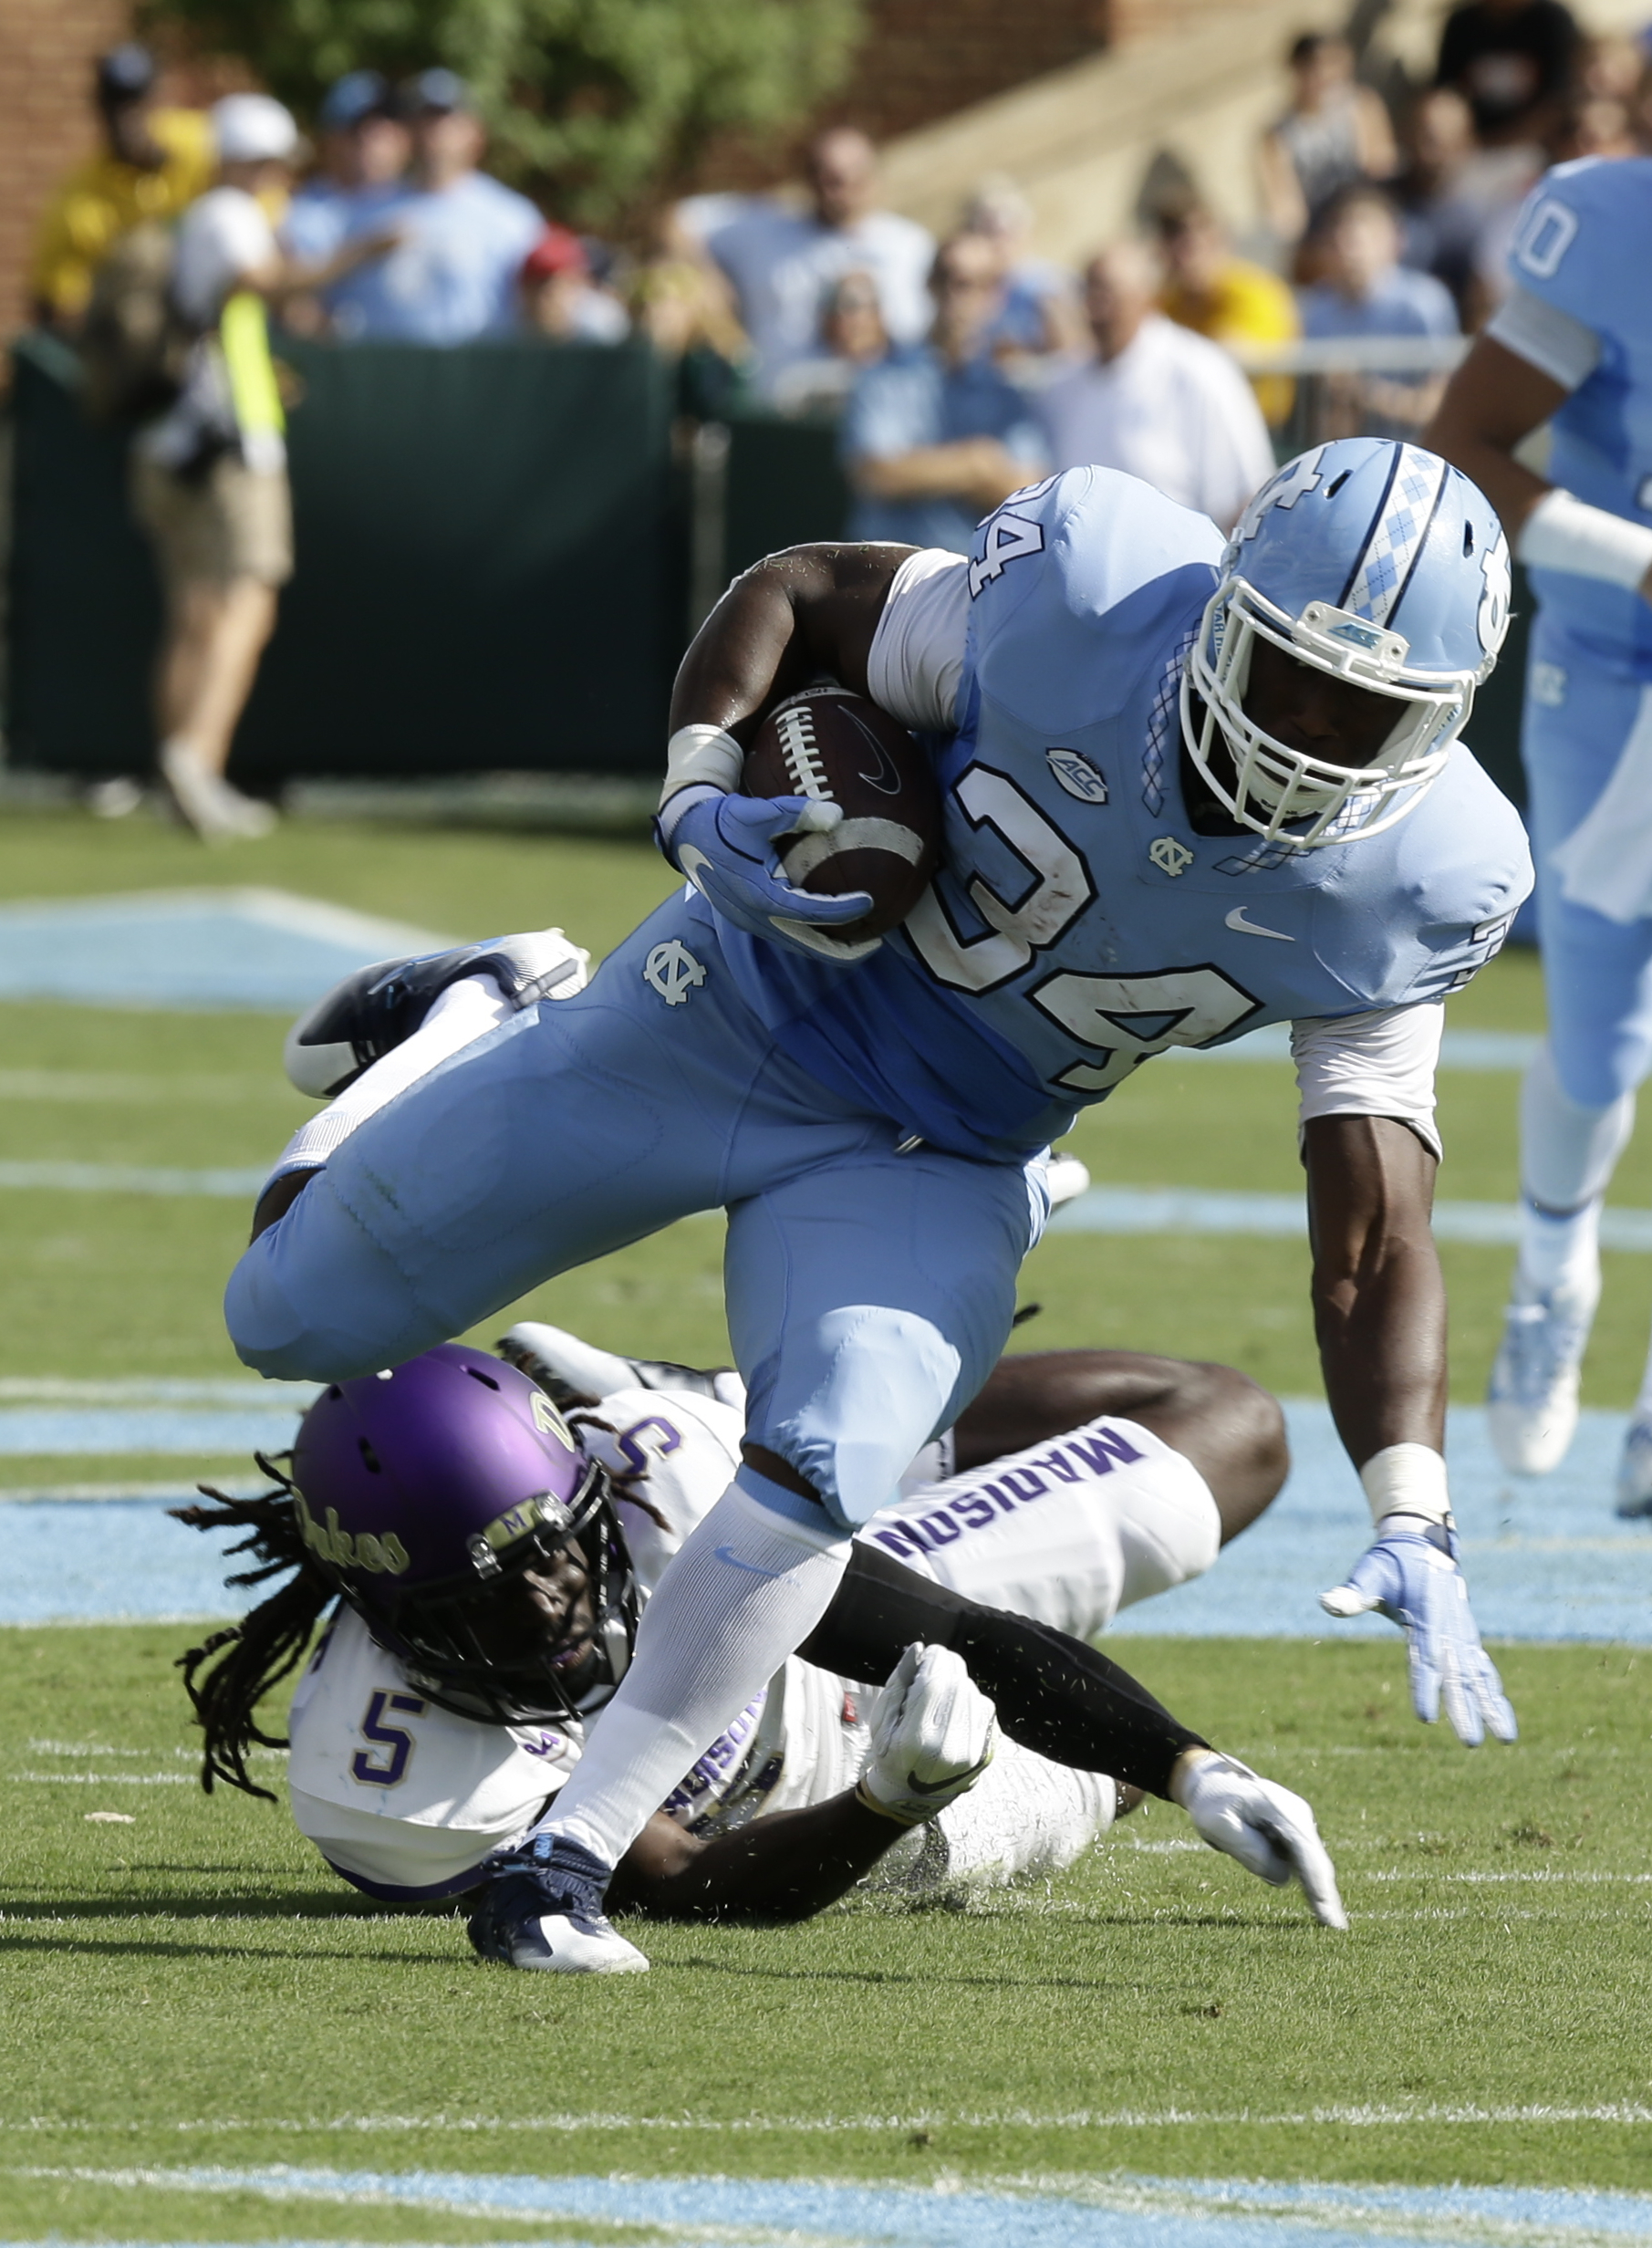 FILE - In this Sept. 17, 2016, file photo, North Carolina's Elijah Hood (34) runs past James Madison's Raven Greene (5) in the first half of an NCAA college football game in Chapel Hill, N.C. Hood has two straight 100-yard rushing performances entering Th